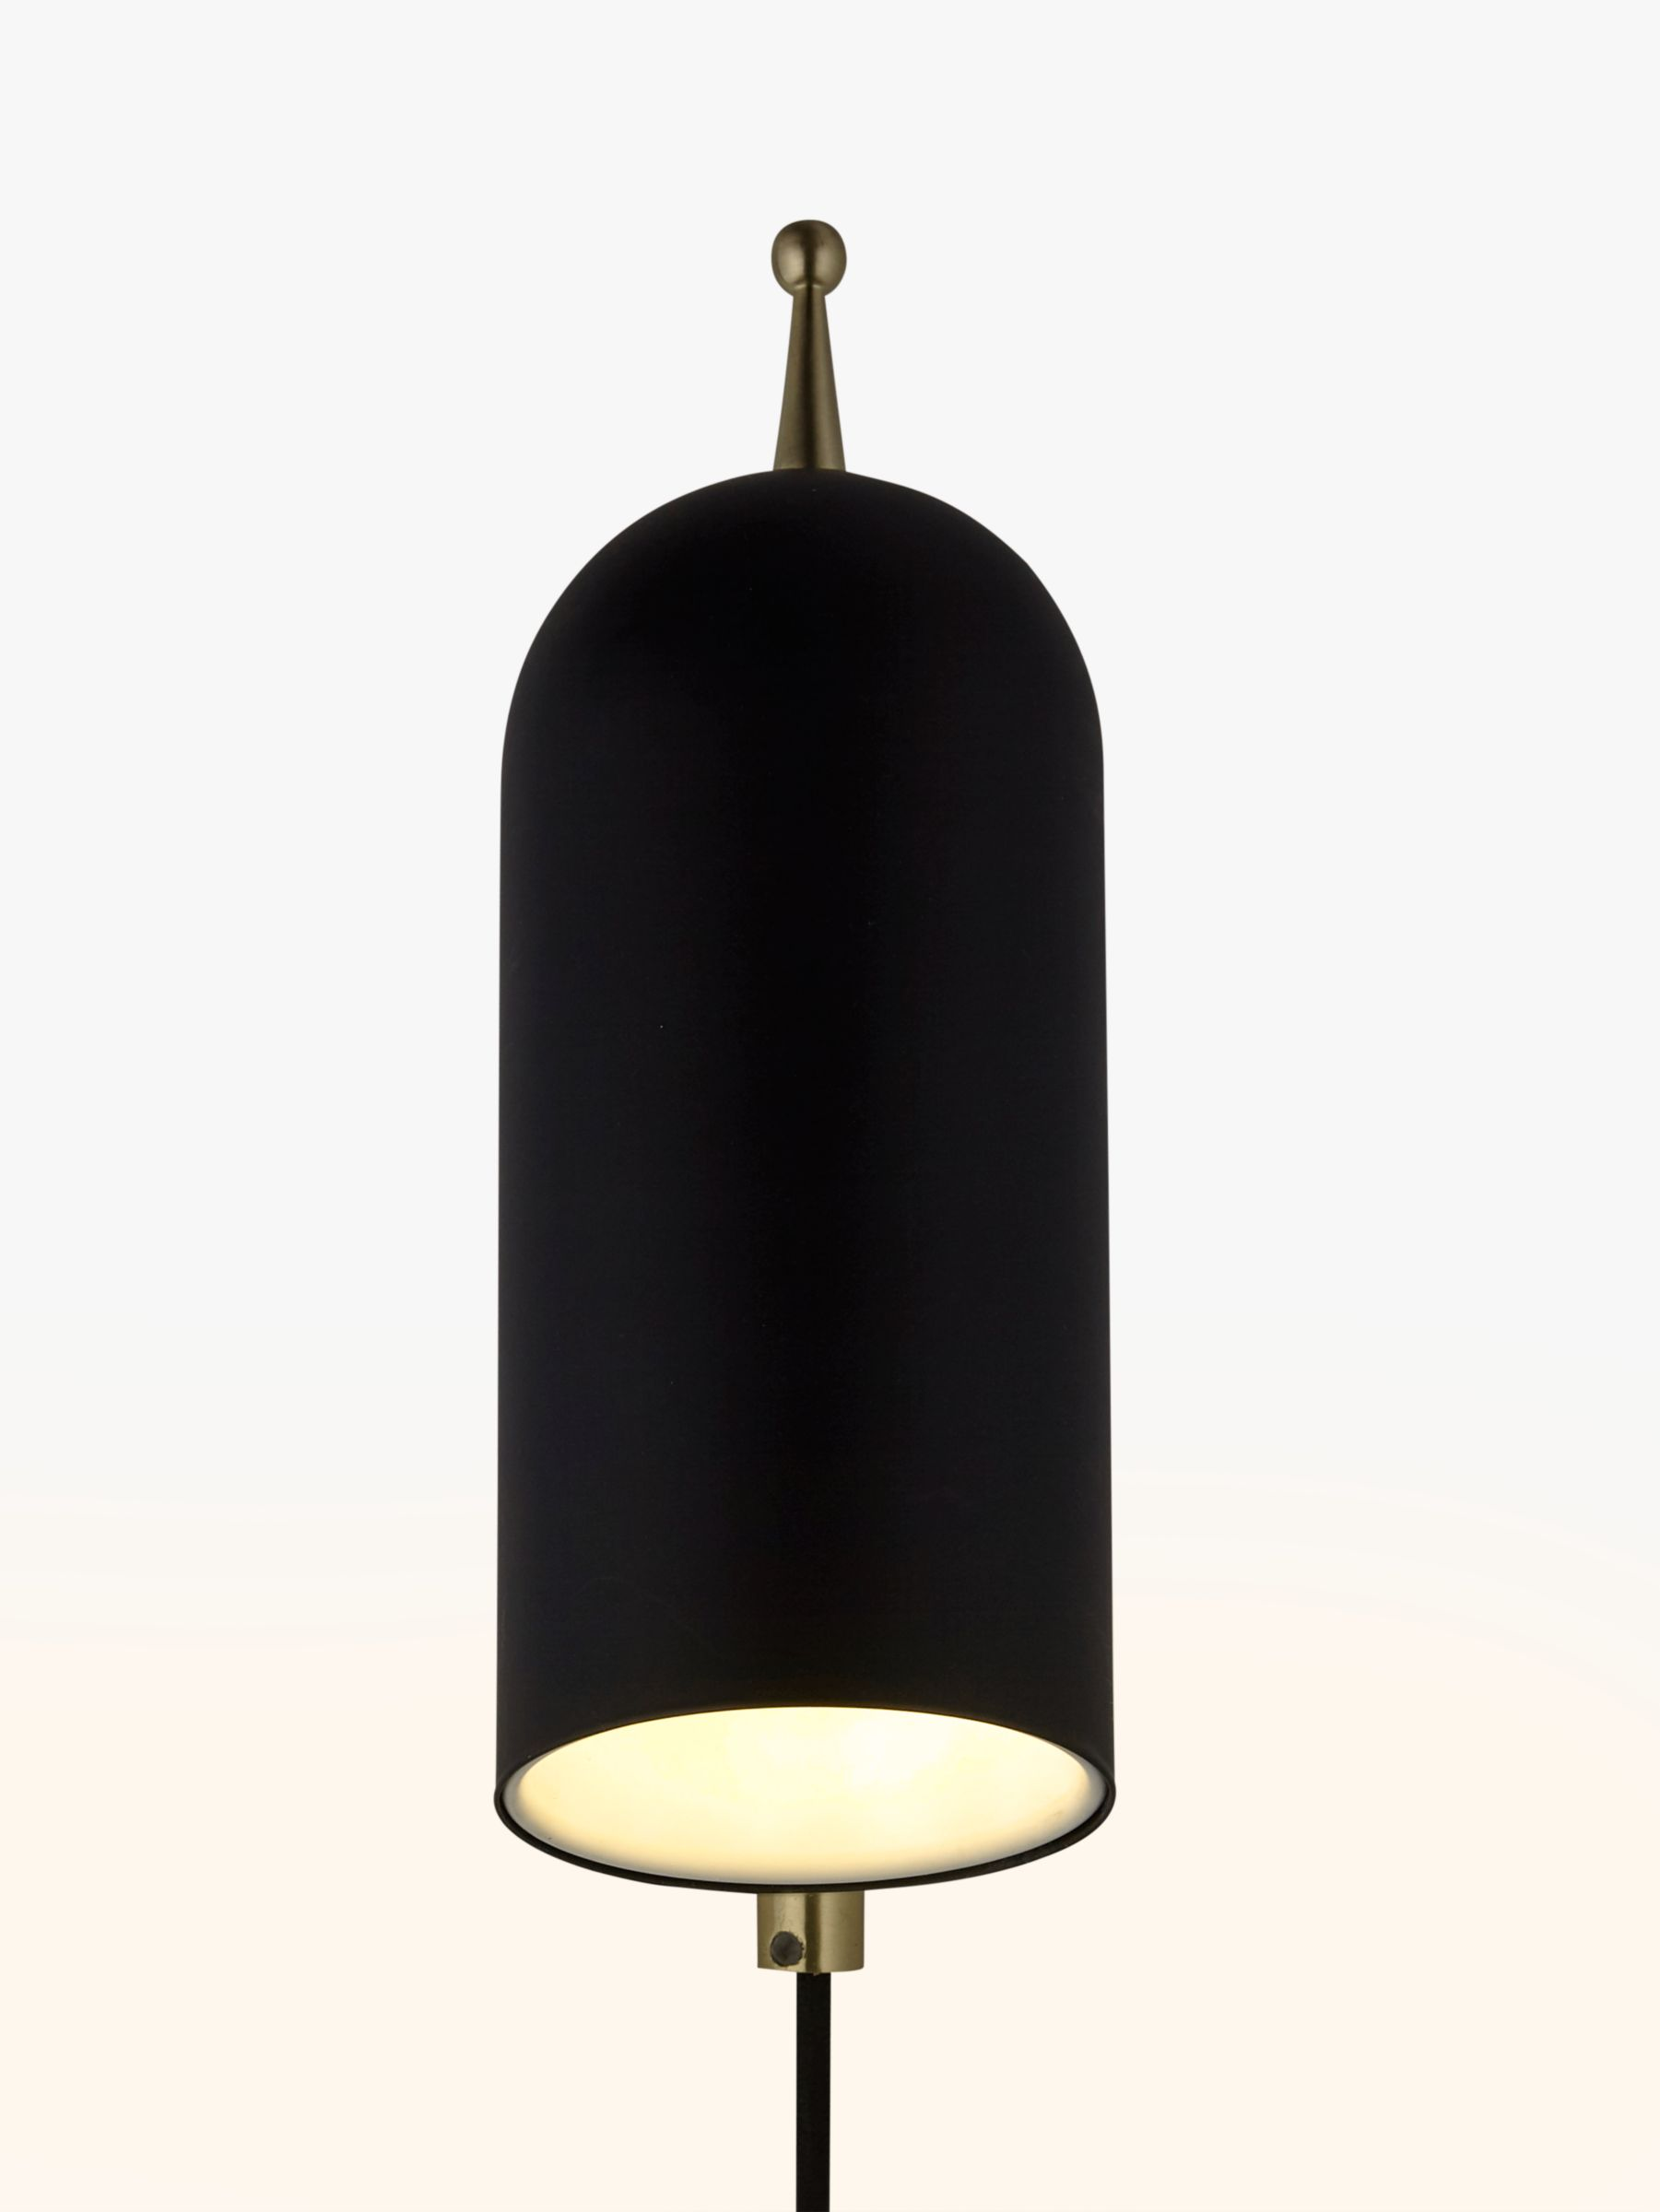 Design Project by John Lewis Design Project by John Lewis No.045 LED Wall Light